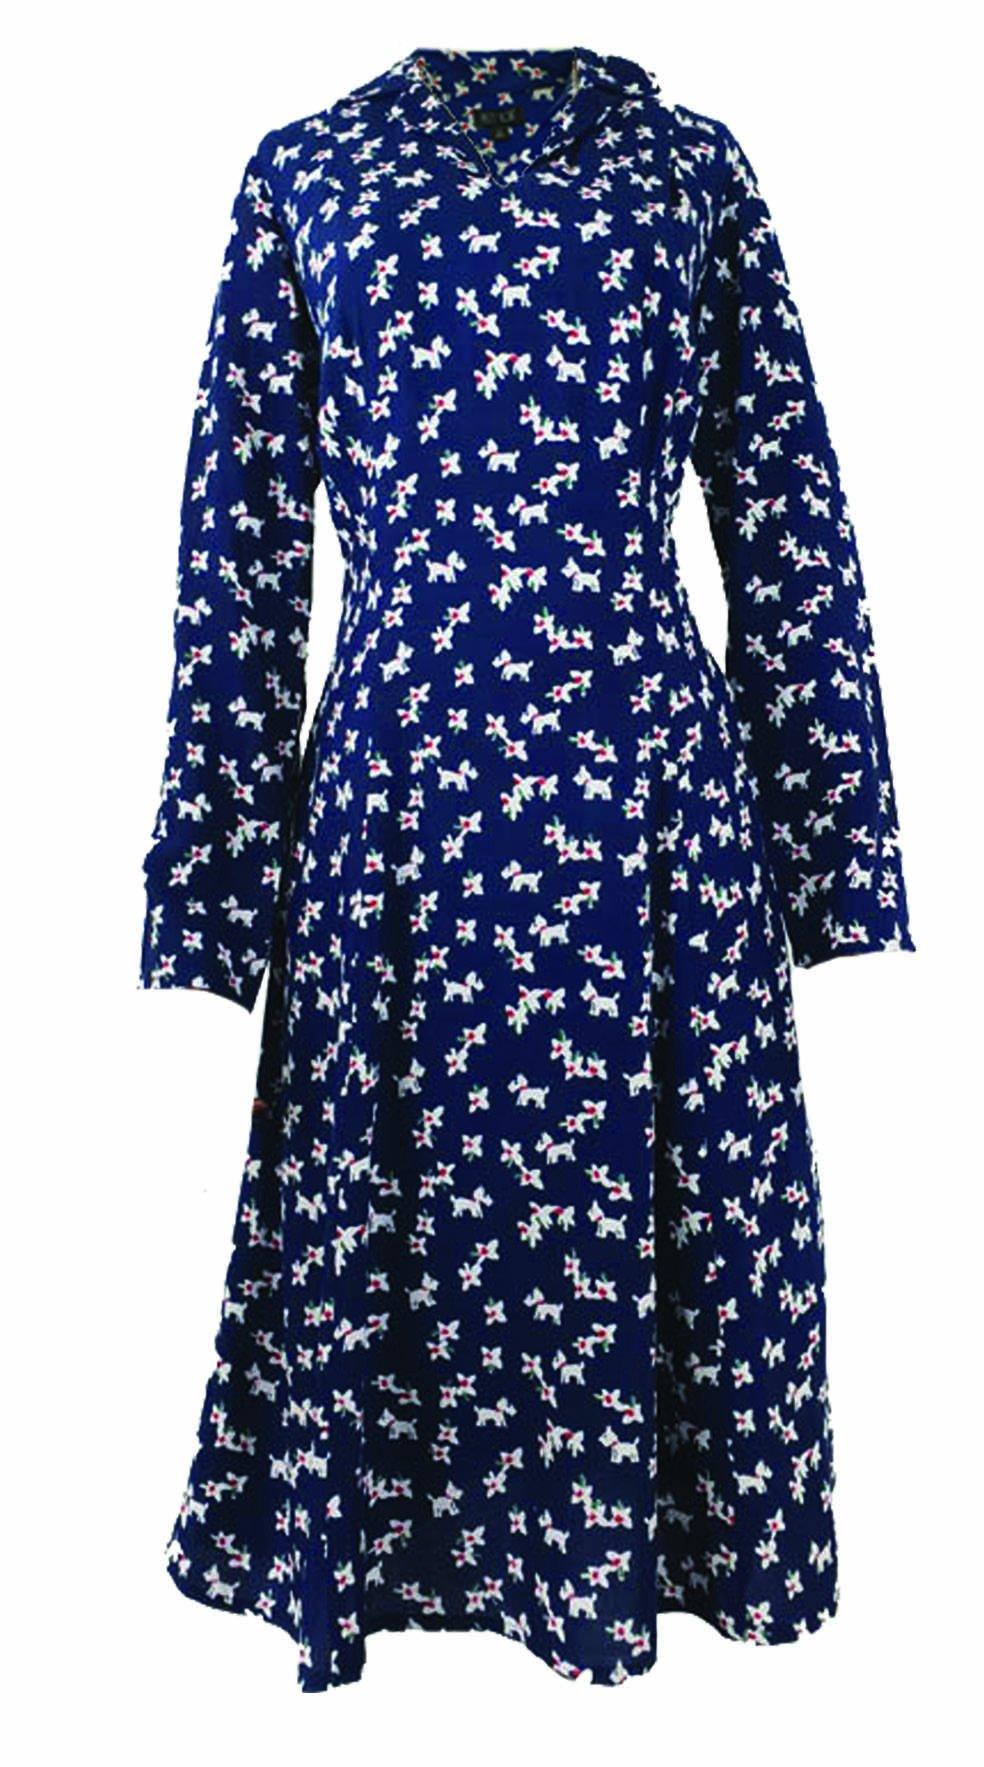 Daphne Pretty Vacant Doggy/Flower Print Dress - BouChic